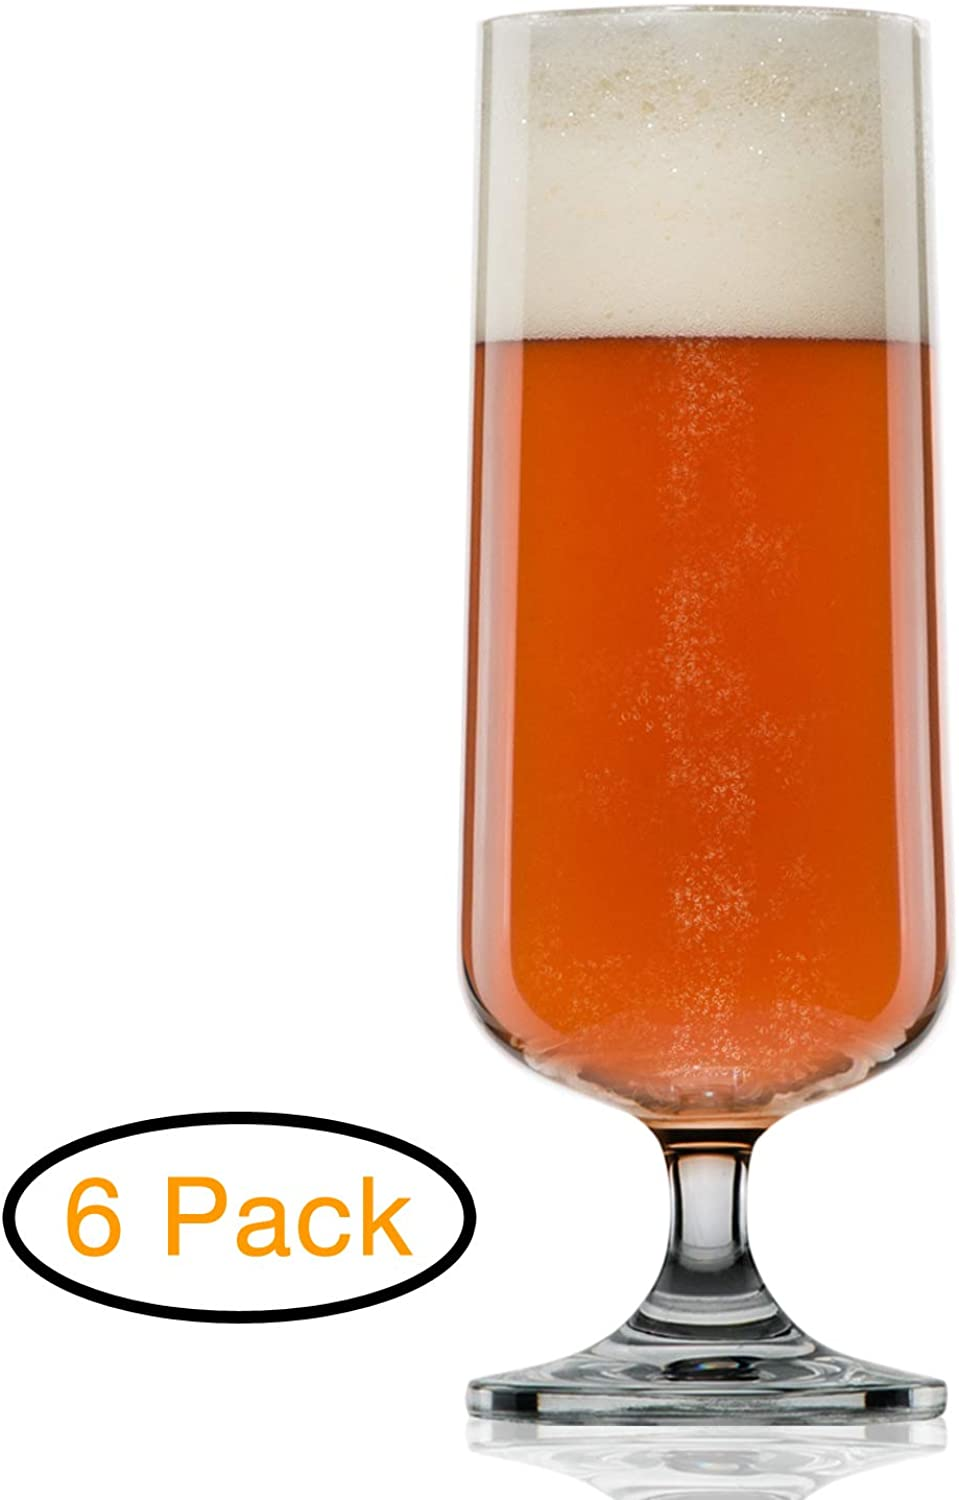 Craft Beer Glasses - Pilsner Glasses - Nucleated for Better Head Retention, Aroma and Flavor (6 Pack)-Handsomely Designed, Crystal 18 oz Tall Beer Glass for Beer Drinking Enhancement Gift Idea for Men